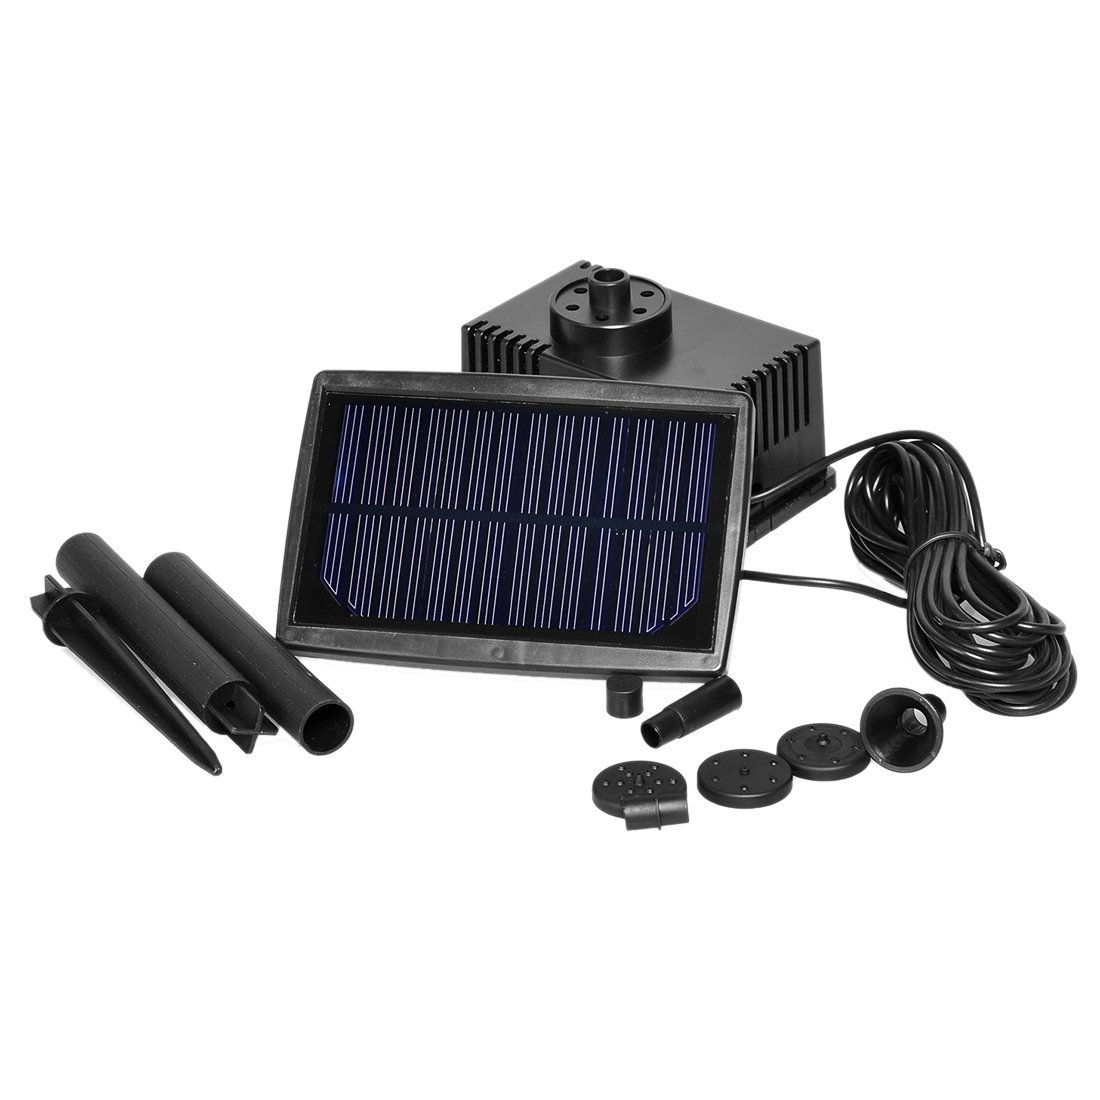 TOOGOO(R) Solar Panel Powered Fountain Garden Pool Pond Submersible Water Pump 5m by TOOGOO(R) (Image #3)